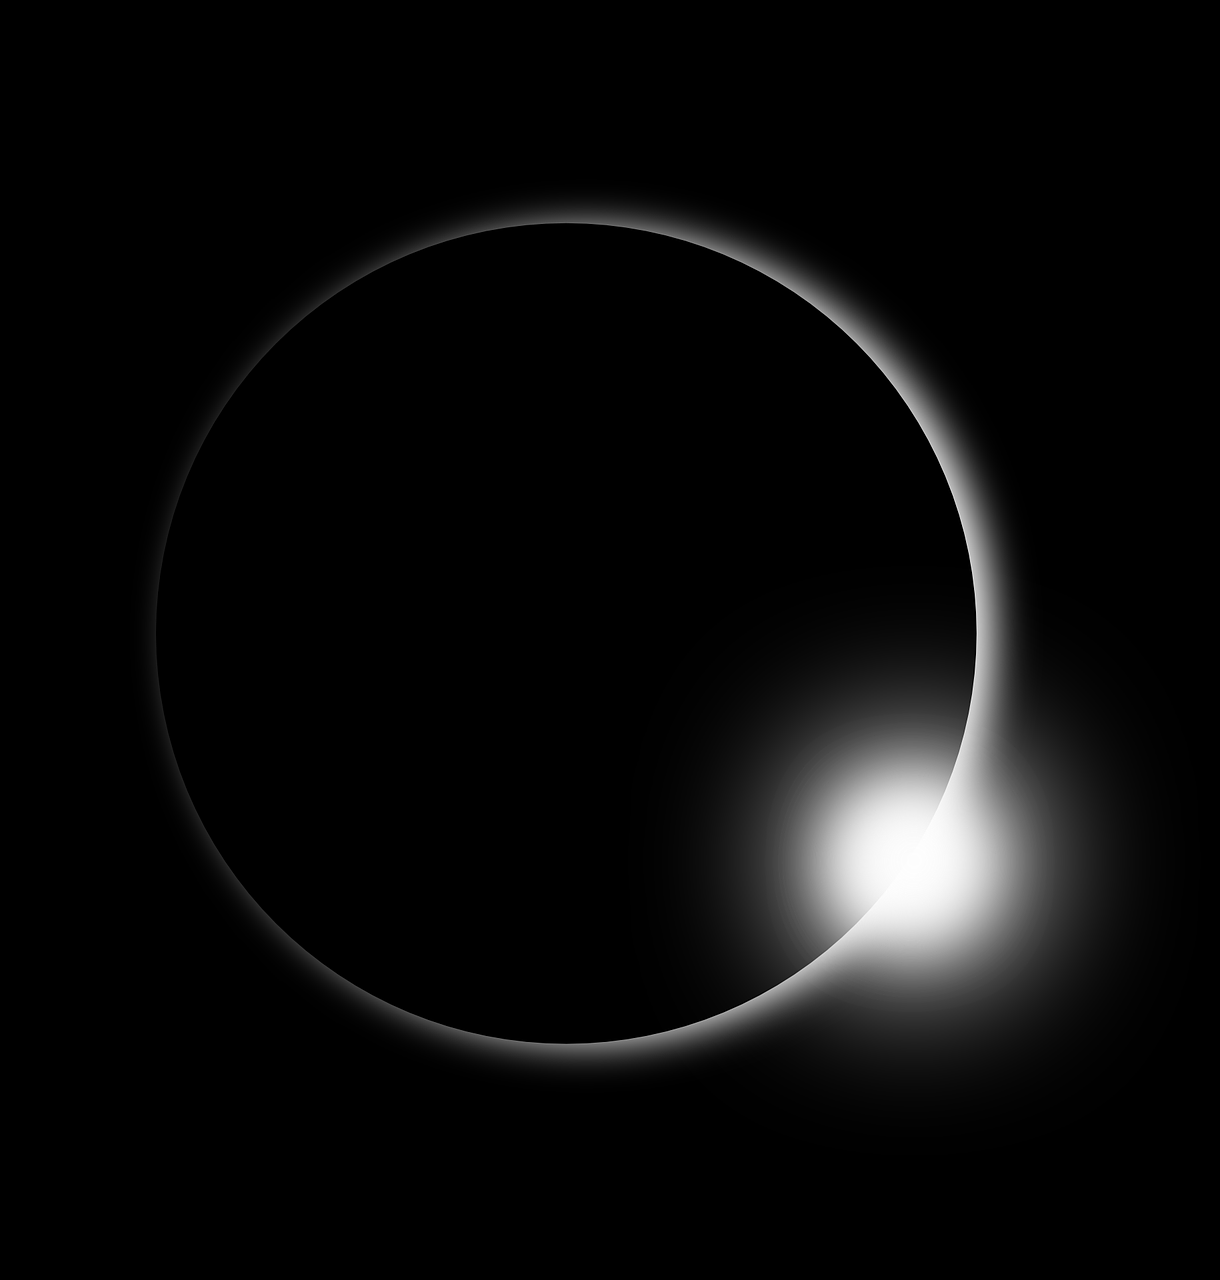 solar-eclipse-152834_1280